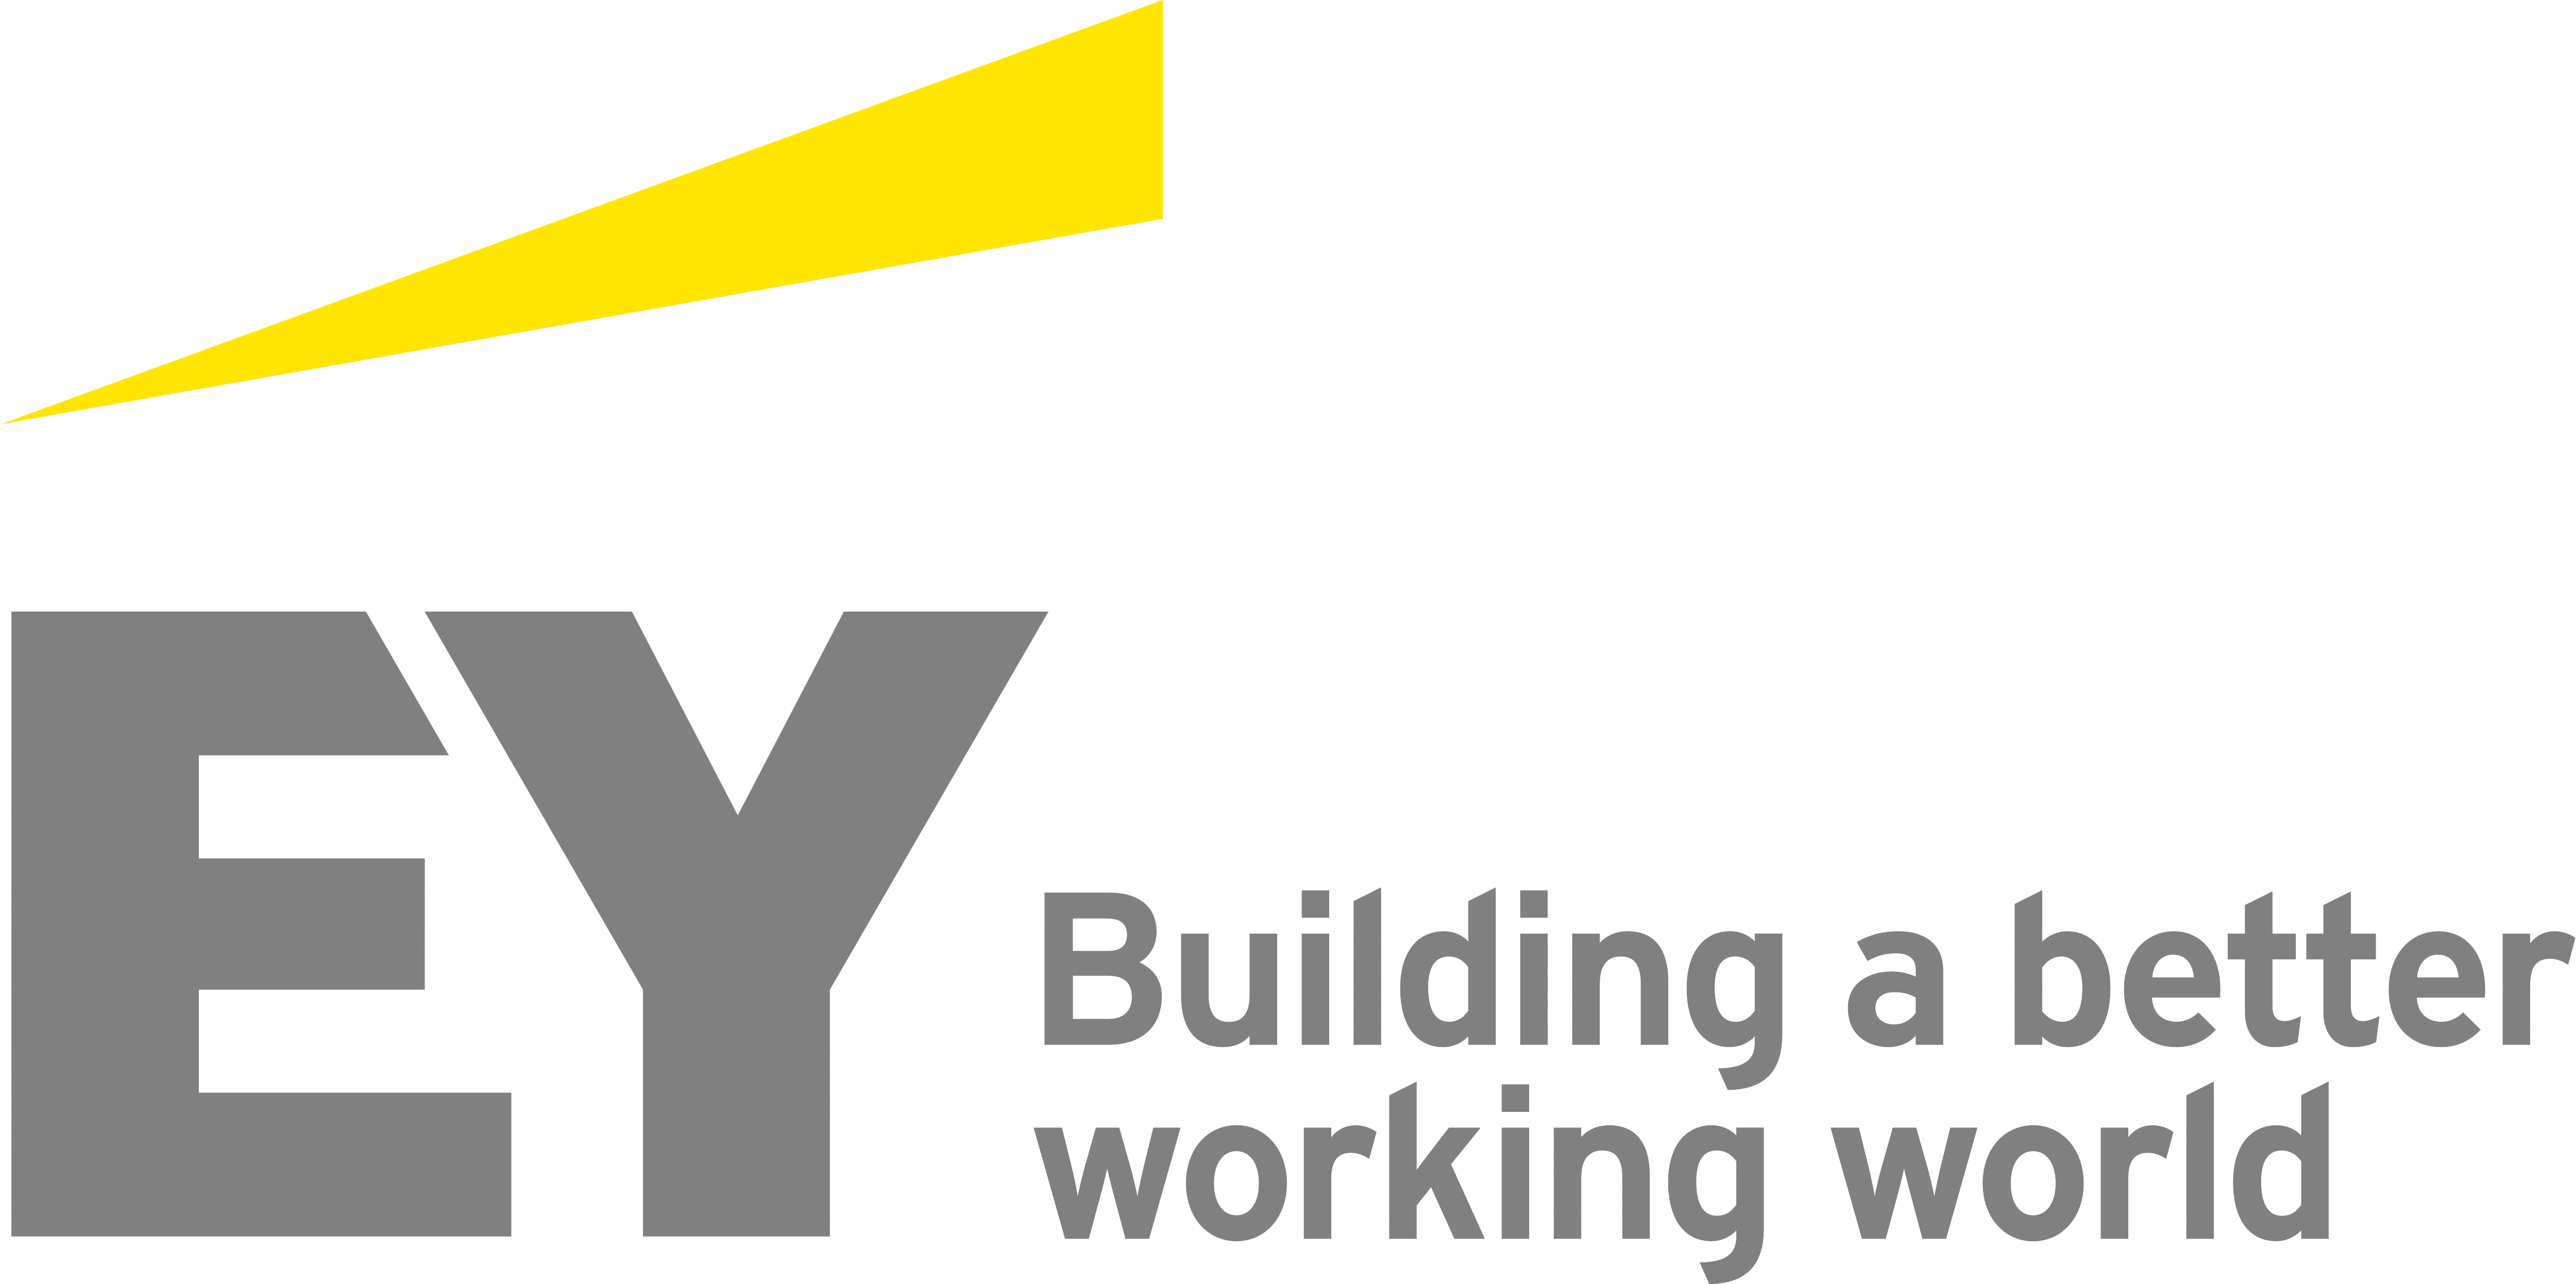 Soft skills talent acquisition - EY logo